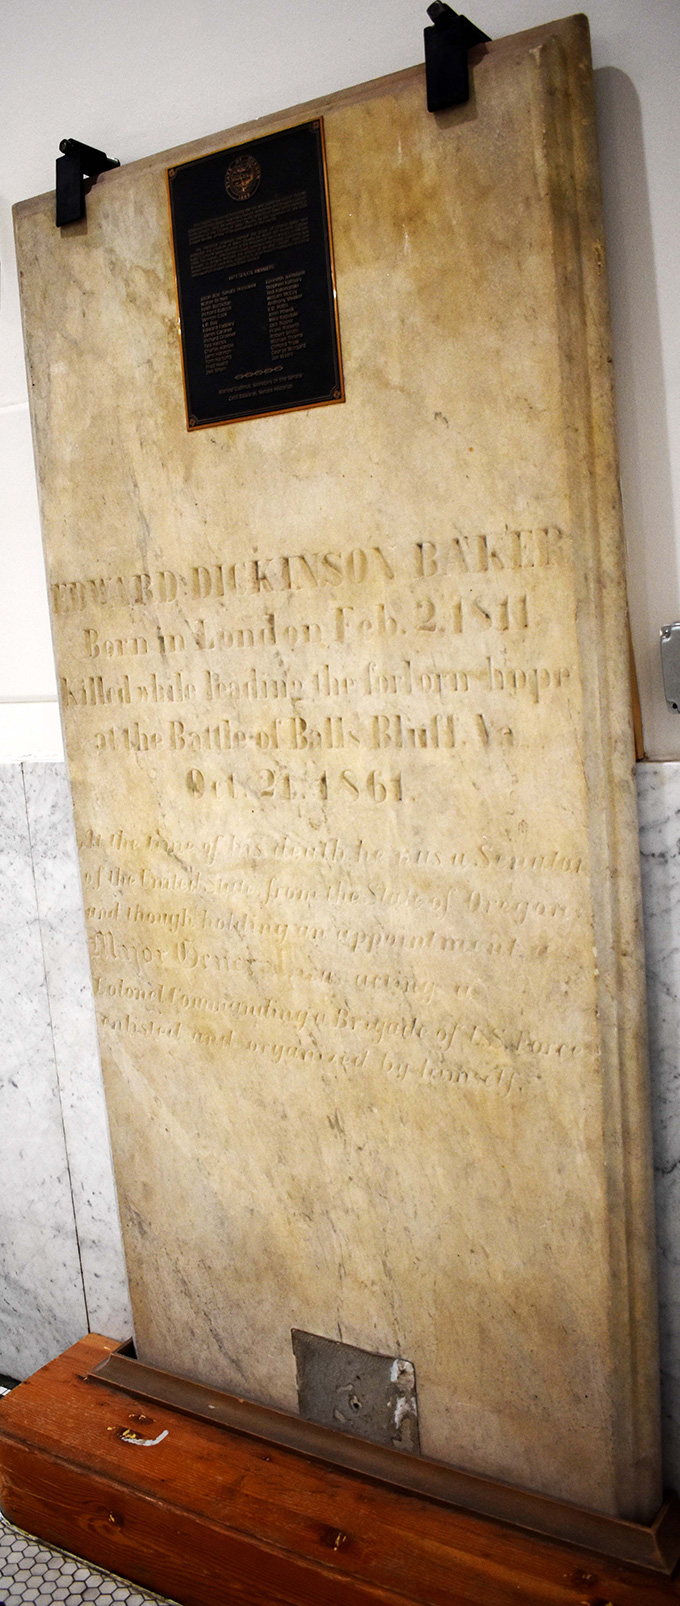 Large, stone grave marker standing on a base in the Baker County Courthouse. Image courtesy of Lisa Britton.